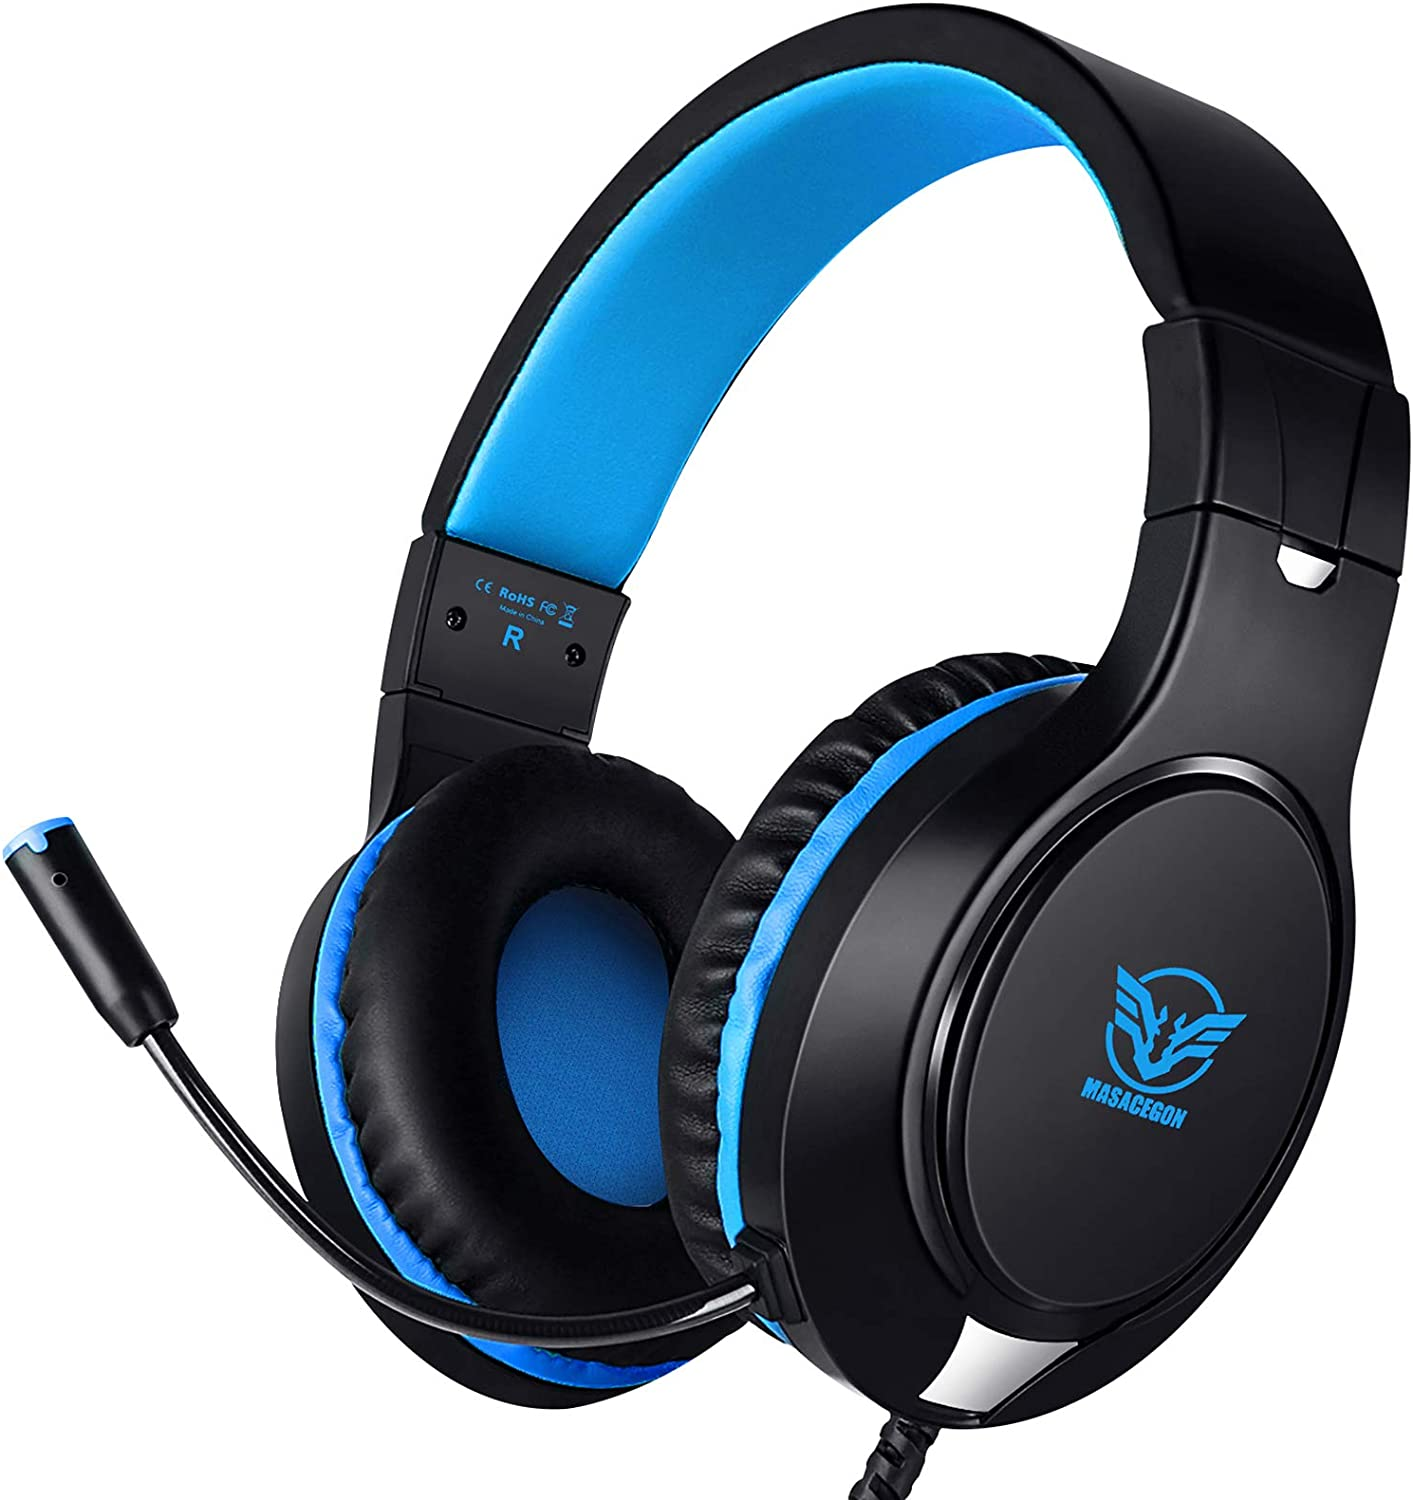 Karvipark H-10 Gaming Headset for Xbox One/PS4/PC/Nintendo Switch|Noise Cancelling,Bass Surround Sound,Over Ear,3.5mm Stereo Wired Headphones with Mic for Clear Chat (Blue)